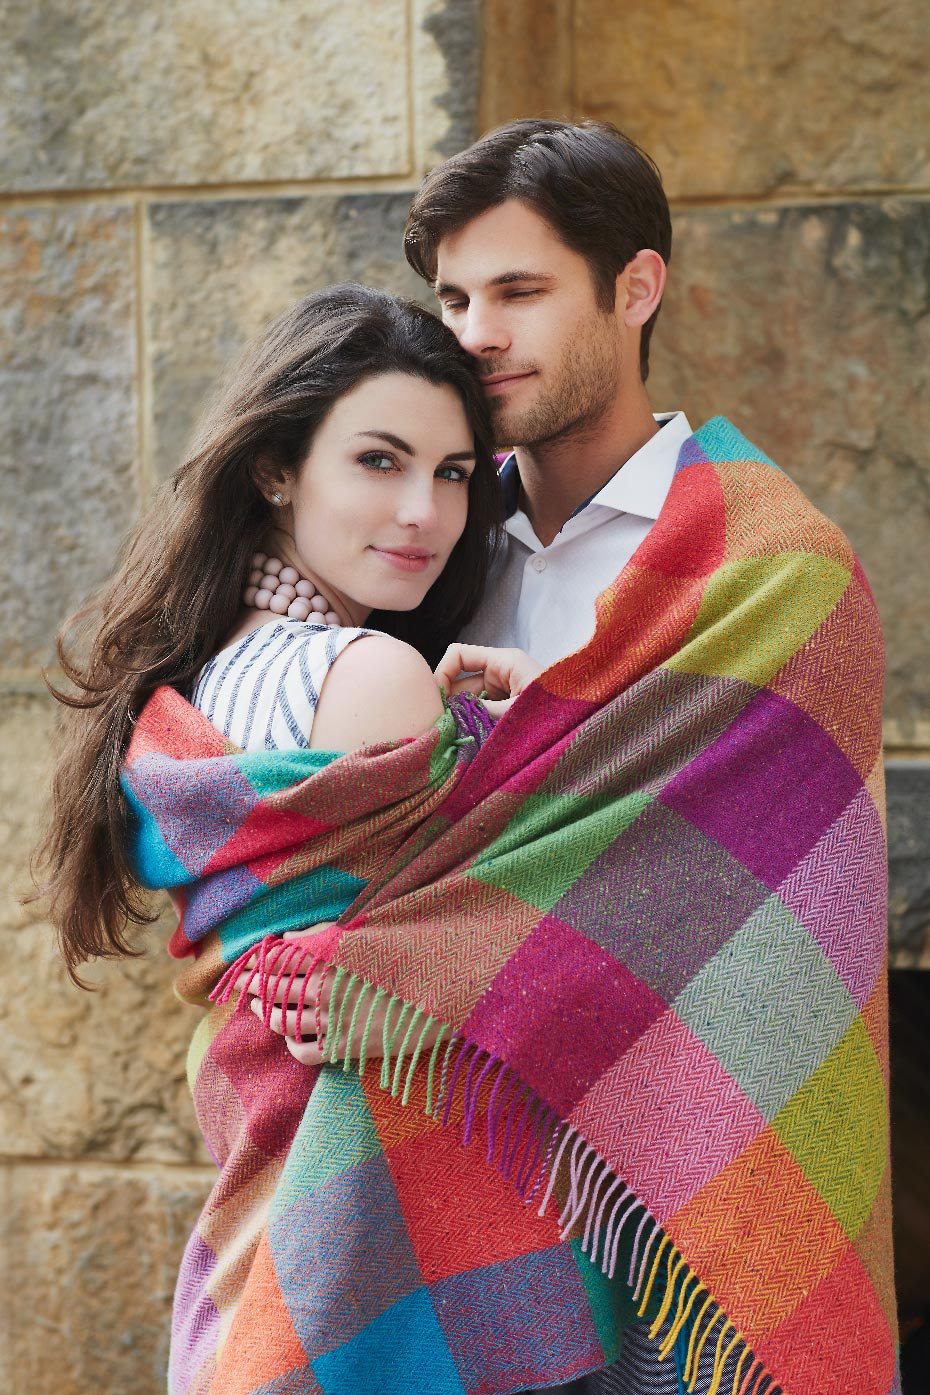 Stacey Van Berkel Photography I Couple embracing under Avoca Ireland wool blanket I The Umstead Hotel and Spa I Cary, North Carolina